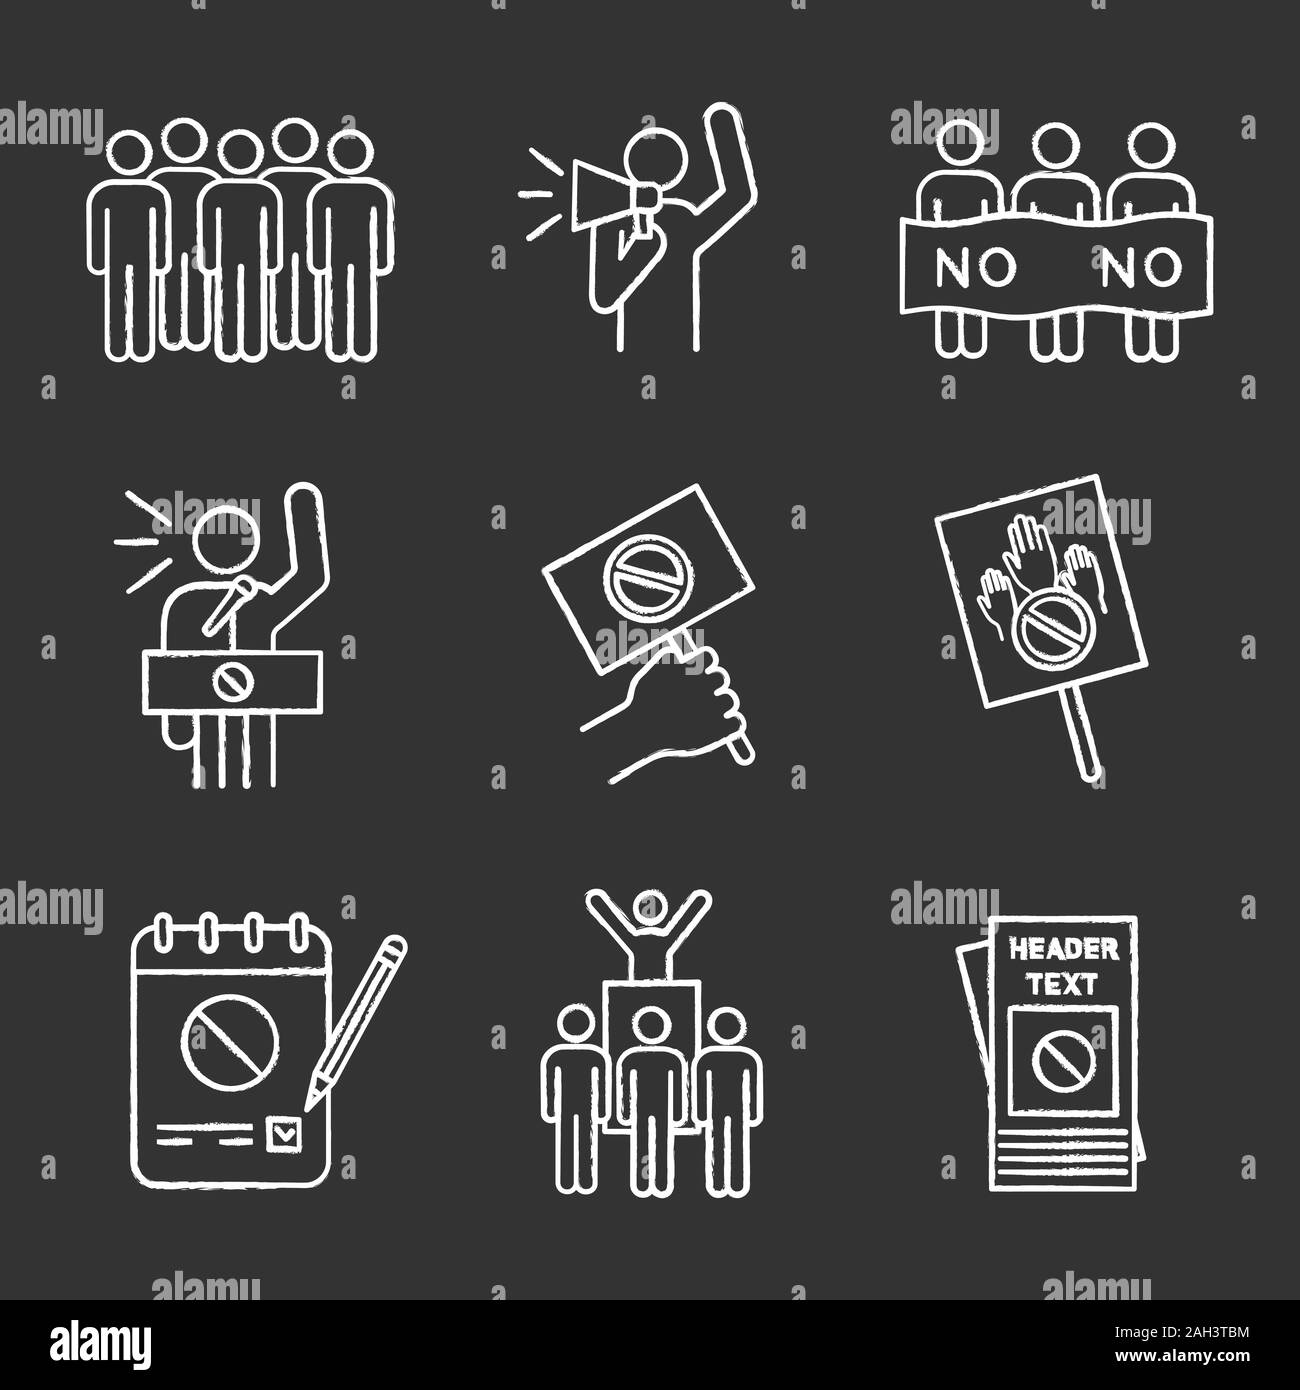 Protest action chalk icons set. Meeting, protester, picket, speech, banner, protest placard, petition, leader, leaflet. Isolated vector chalkboard ill Stock Vector